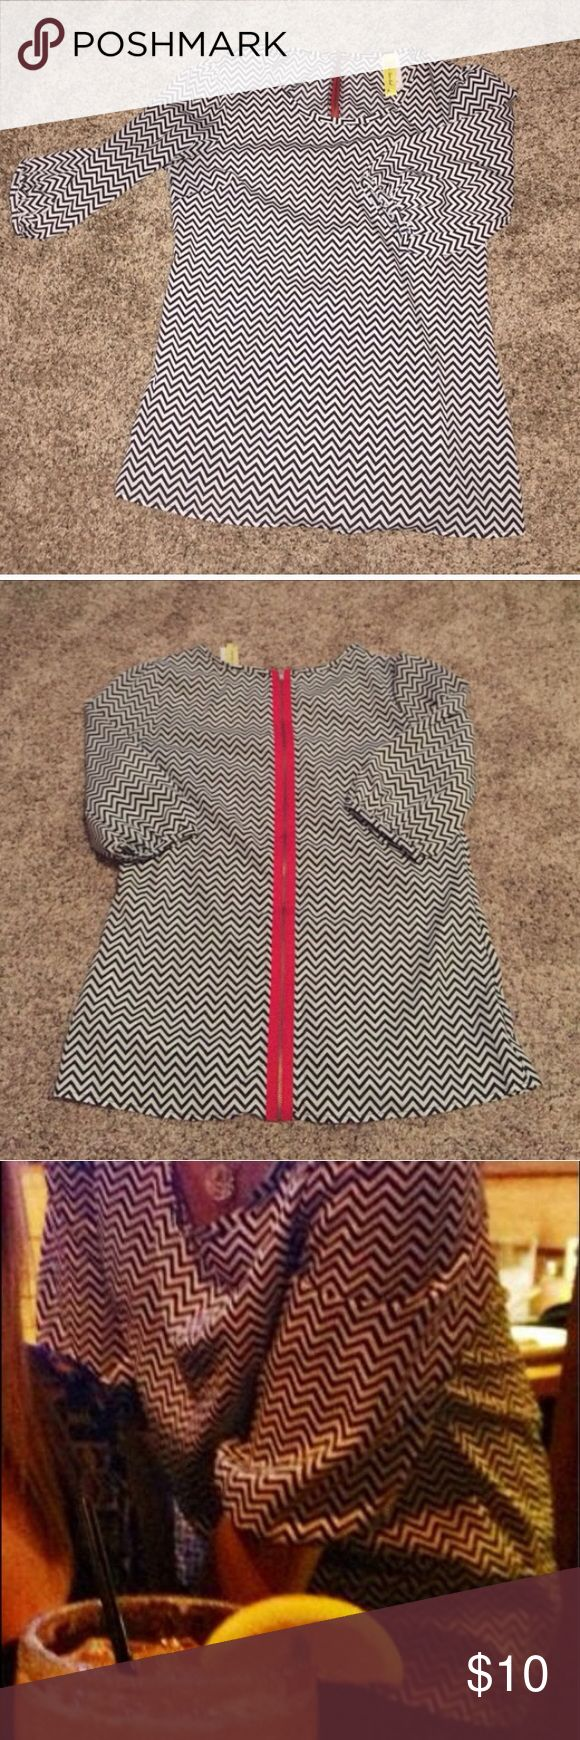 *Final Price* Black and White Chevron Top size S/M Super cute black and white chevron top with zipper detail on the back. Like new condition. I purchased on Poshmark but it is just a little too big. I am listing for the exact same price I paid for it. Tops Blouses